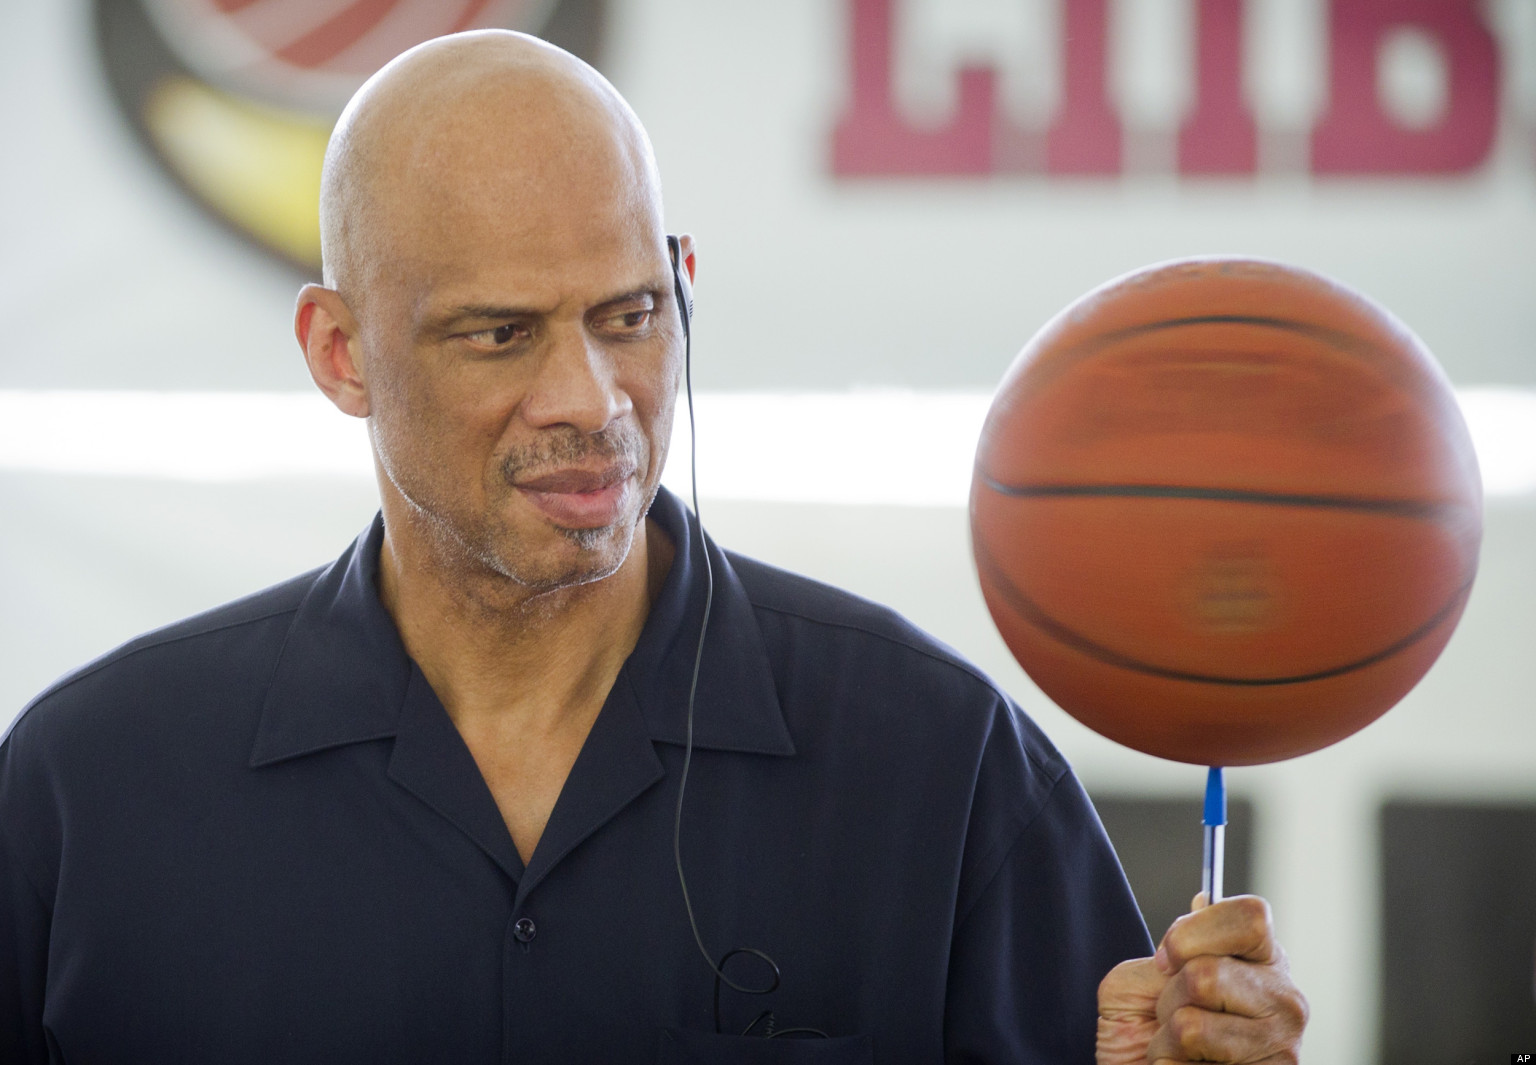 kareem abdul-jabbar spins a basketball atop his pen